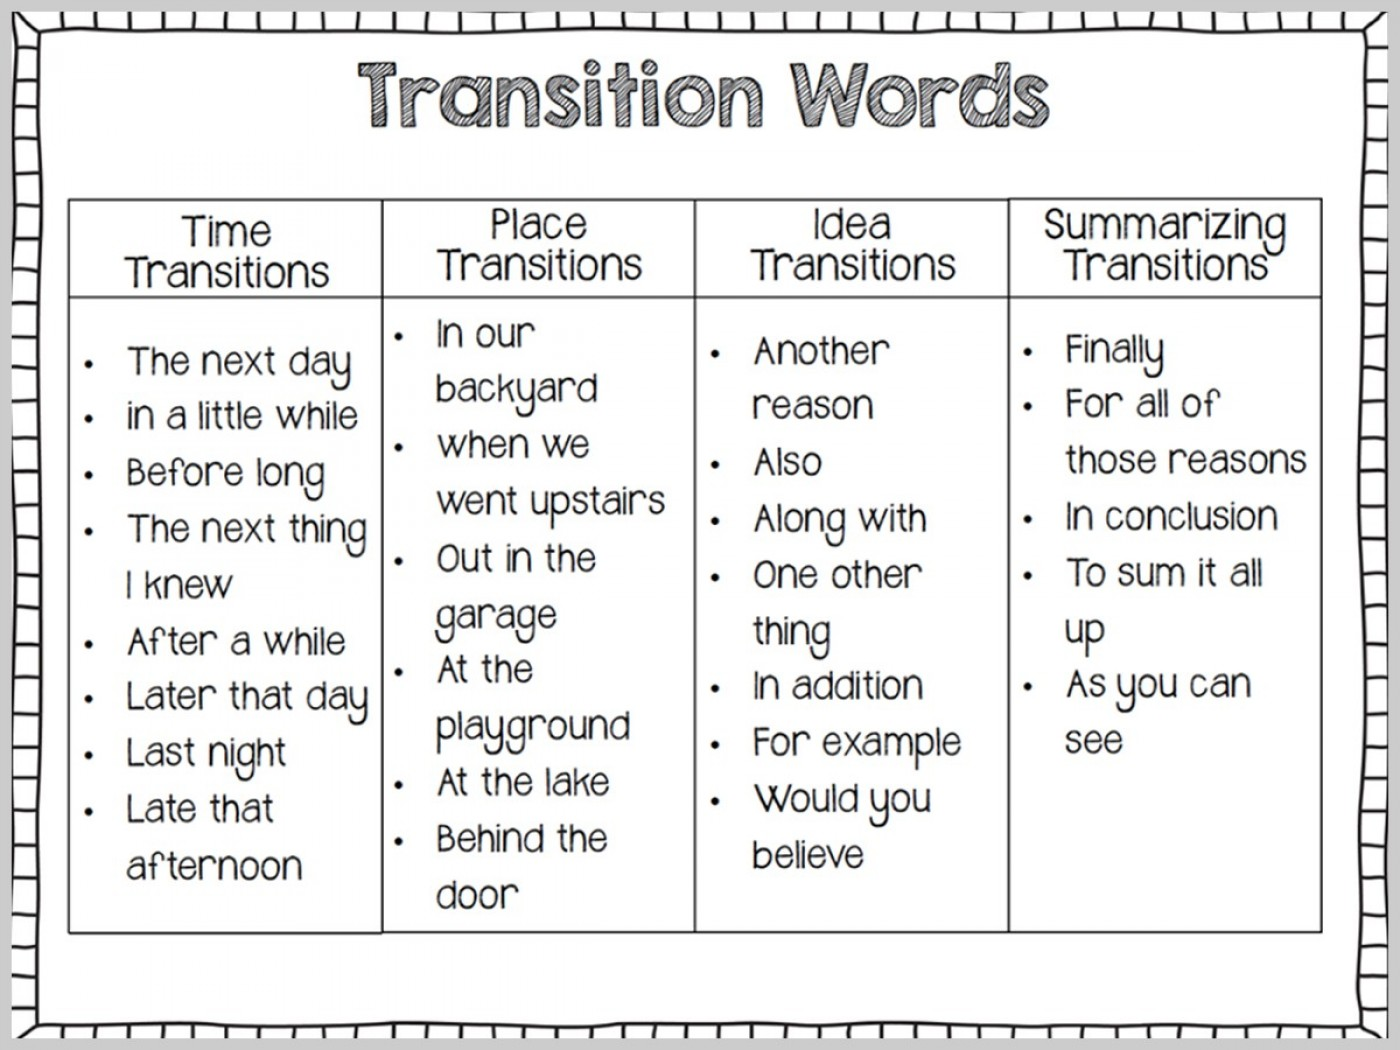 012 Essay Example Connecting Words For Essays Transition Goal Blockety Co French Forum Linking And Phrases Fluent Used In Incredible Academic Ielts 1400